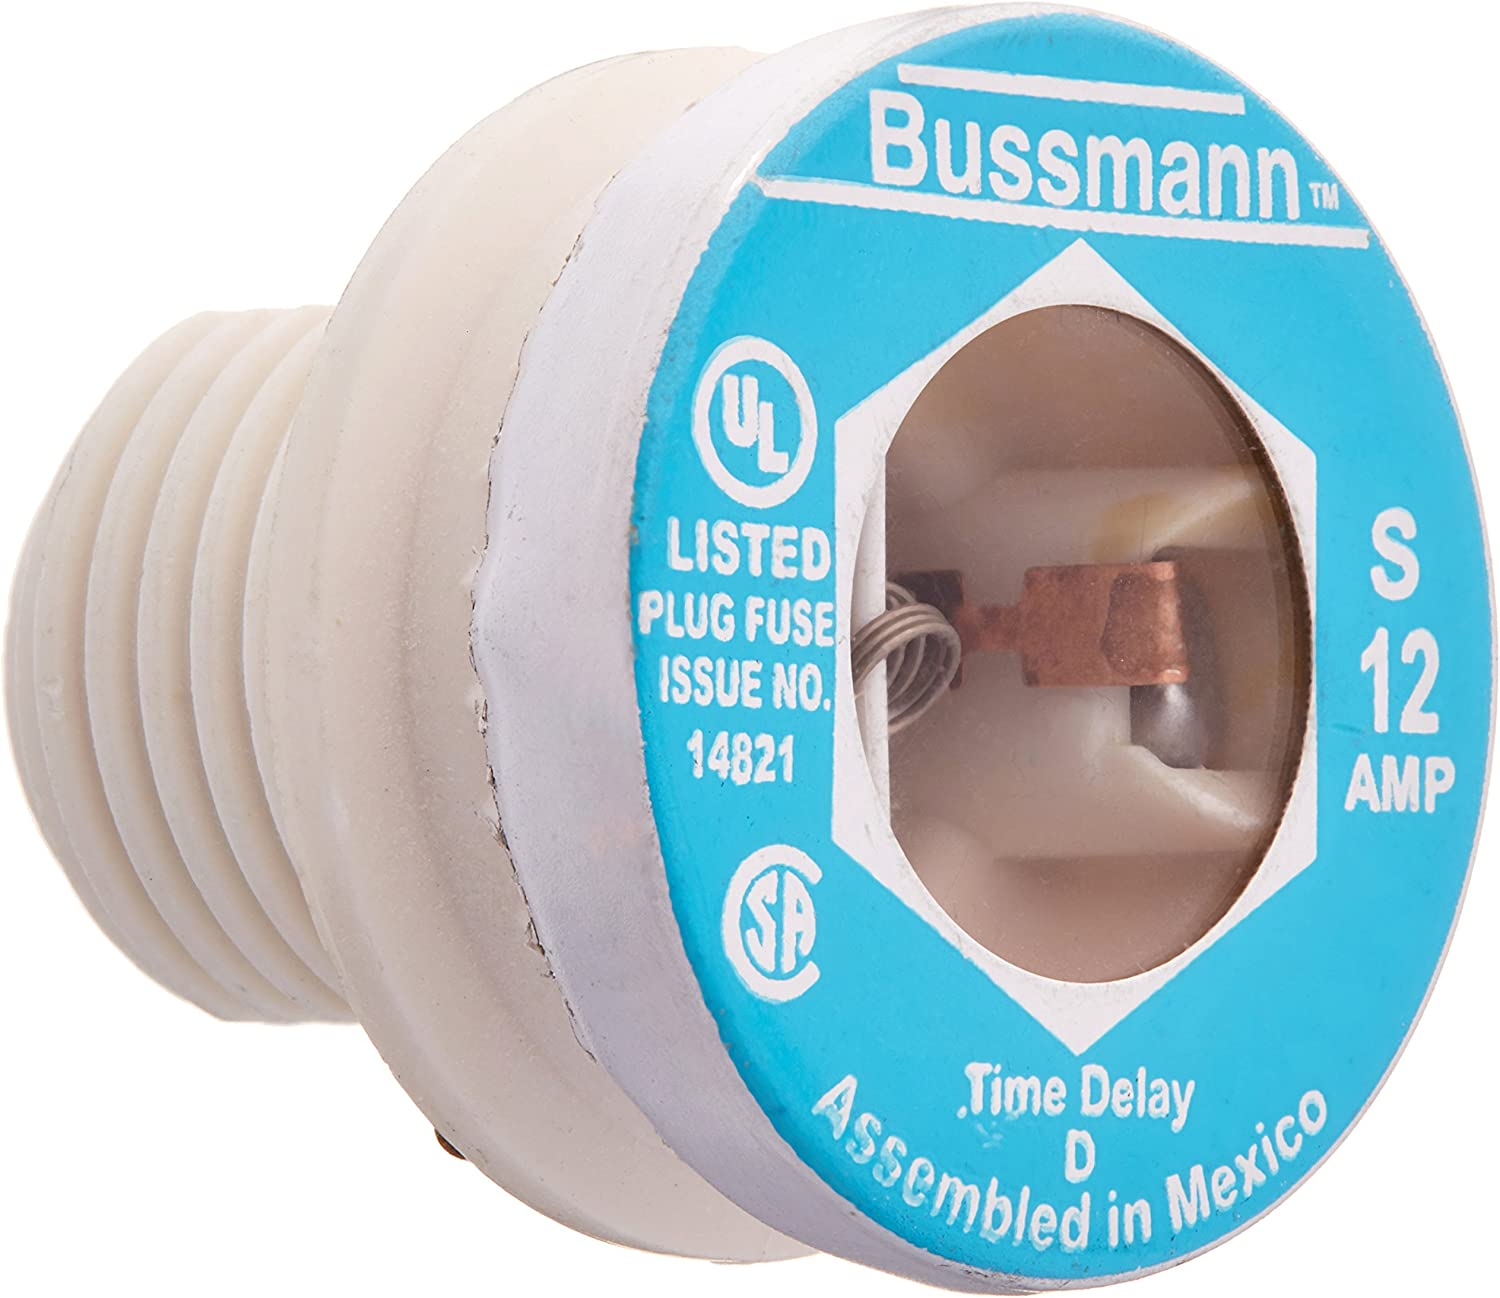 Bussmann T-25BC 25 Amp Type T Time-Delay Dual-Element Edison Base Plug Fuse 125V UL Listed 1-In Bag